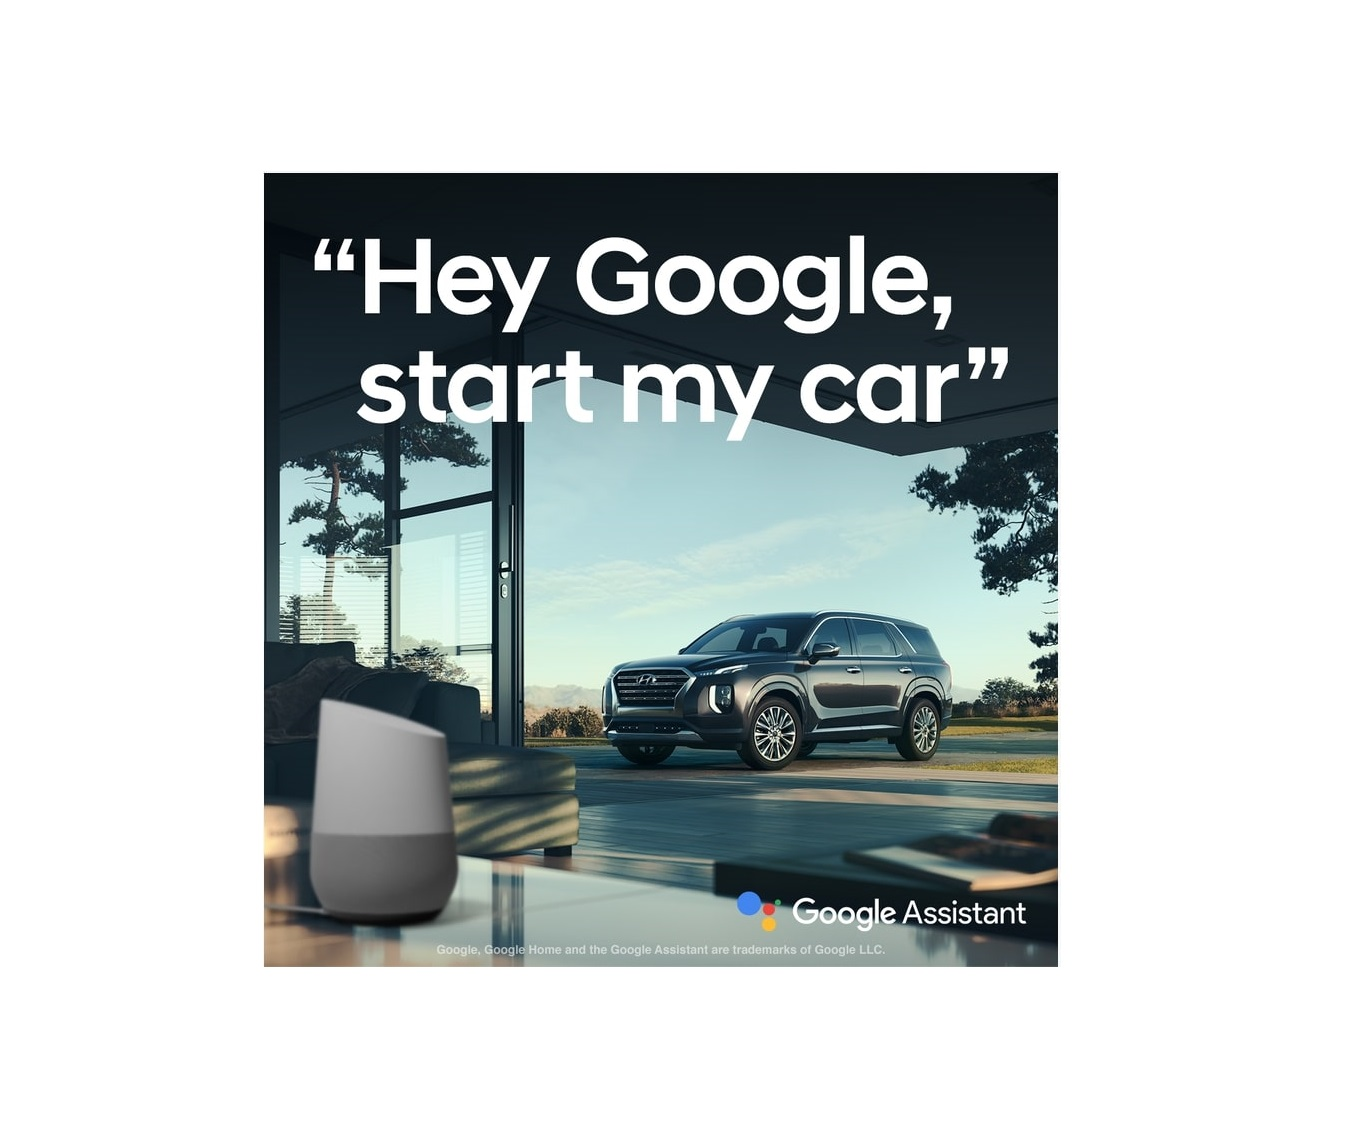 Hyundai Streamlines Integration with the Google Assistant